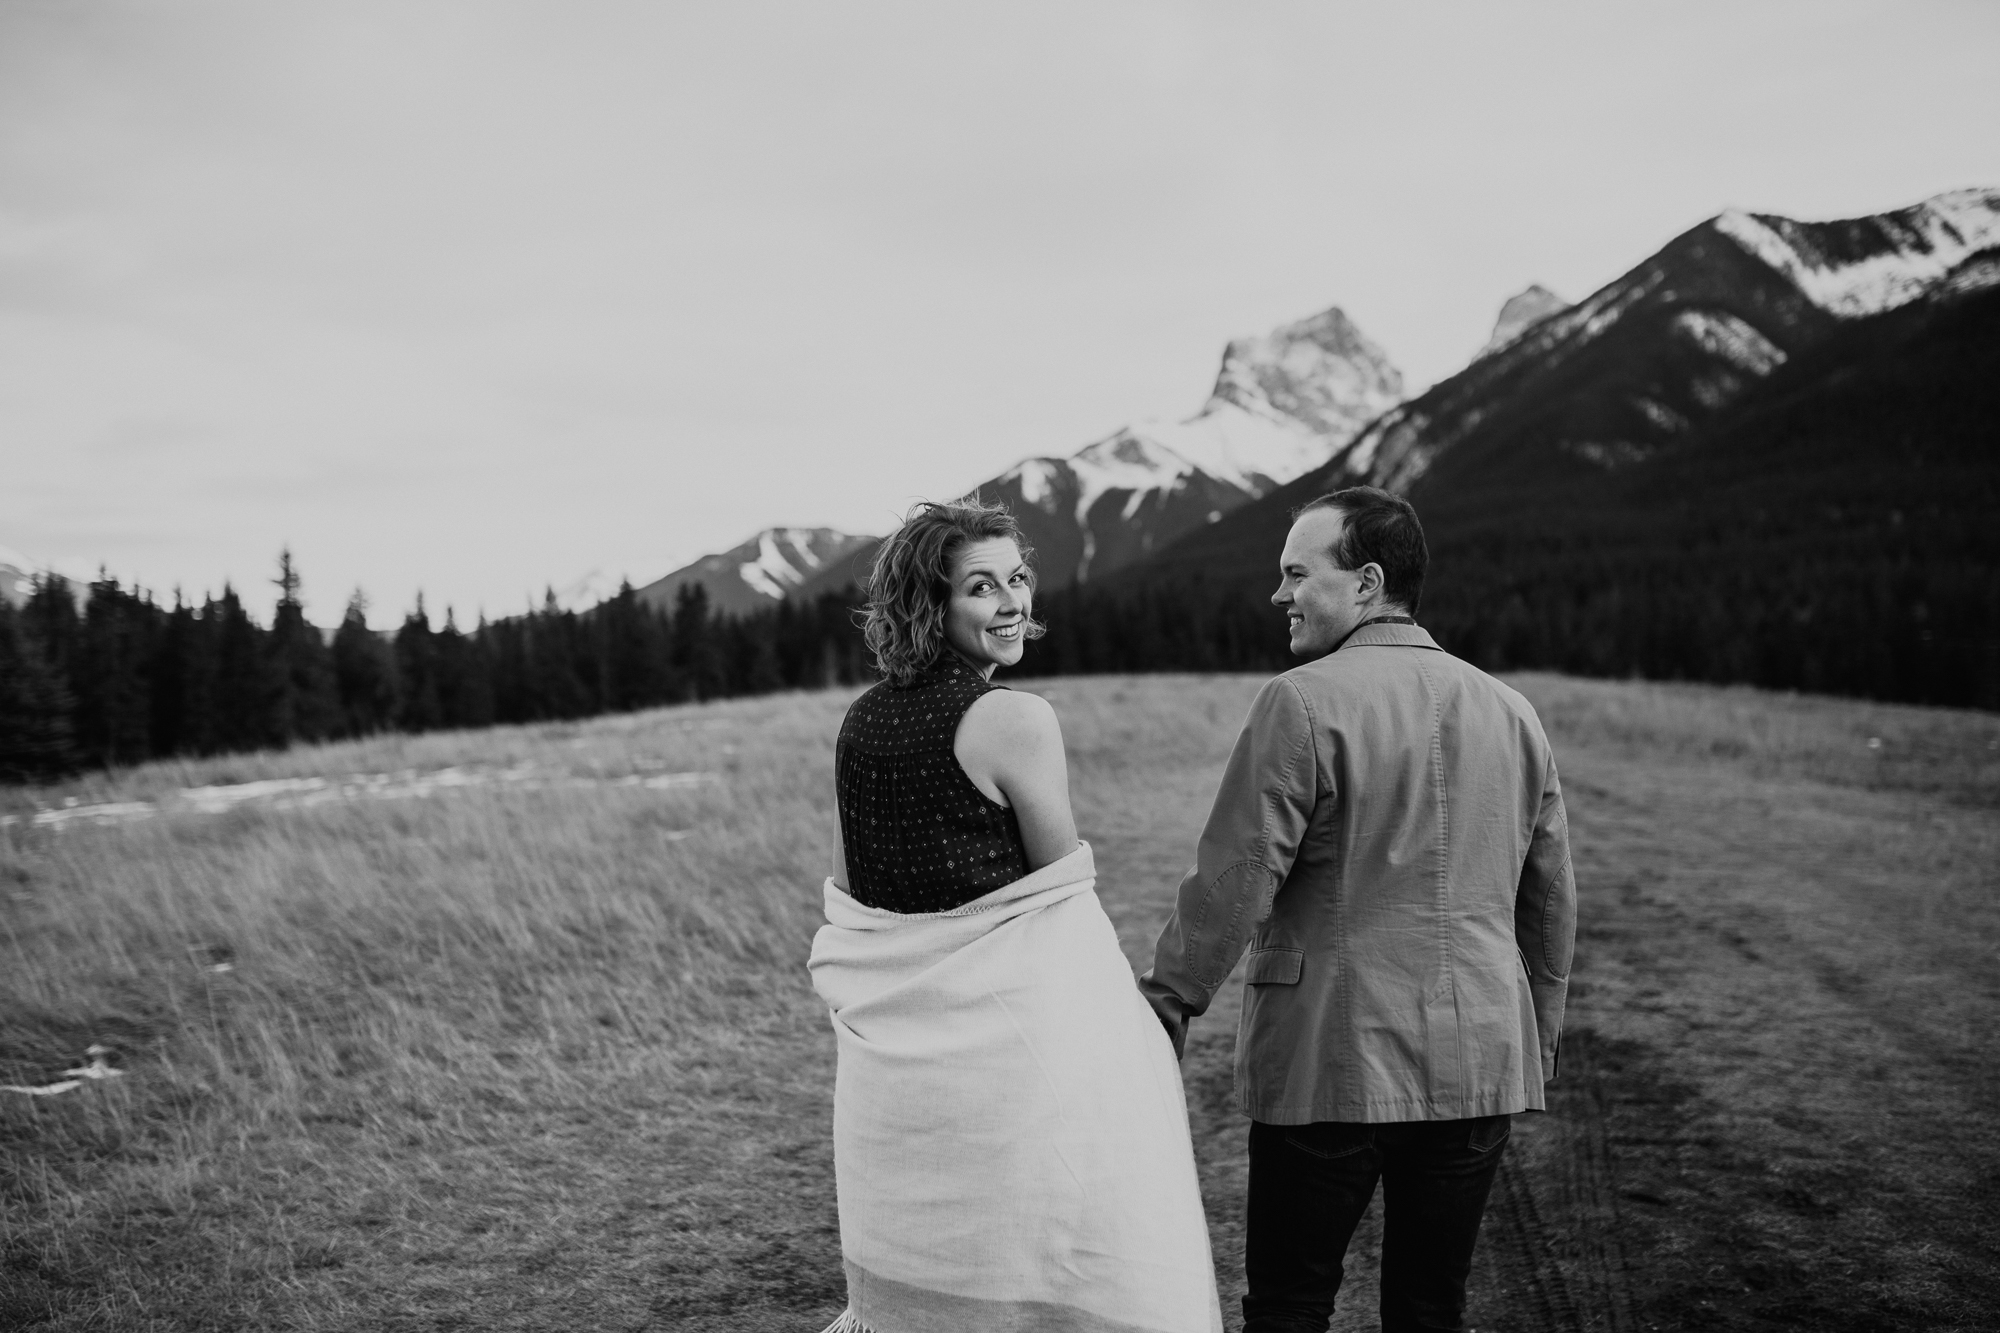 Calgary-wedding-photographer-16.jpg